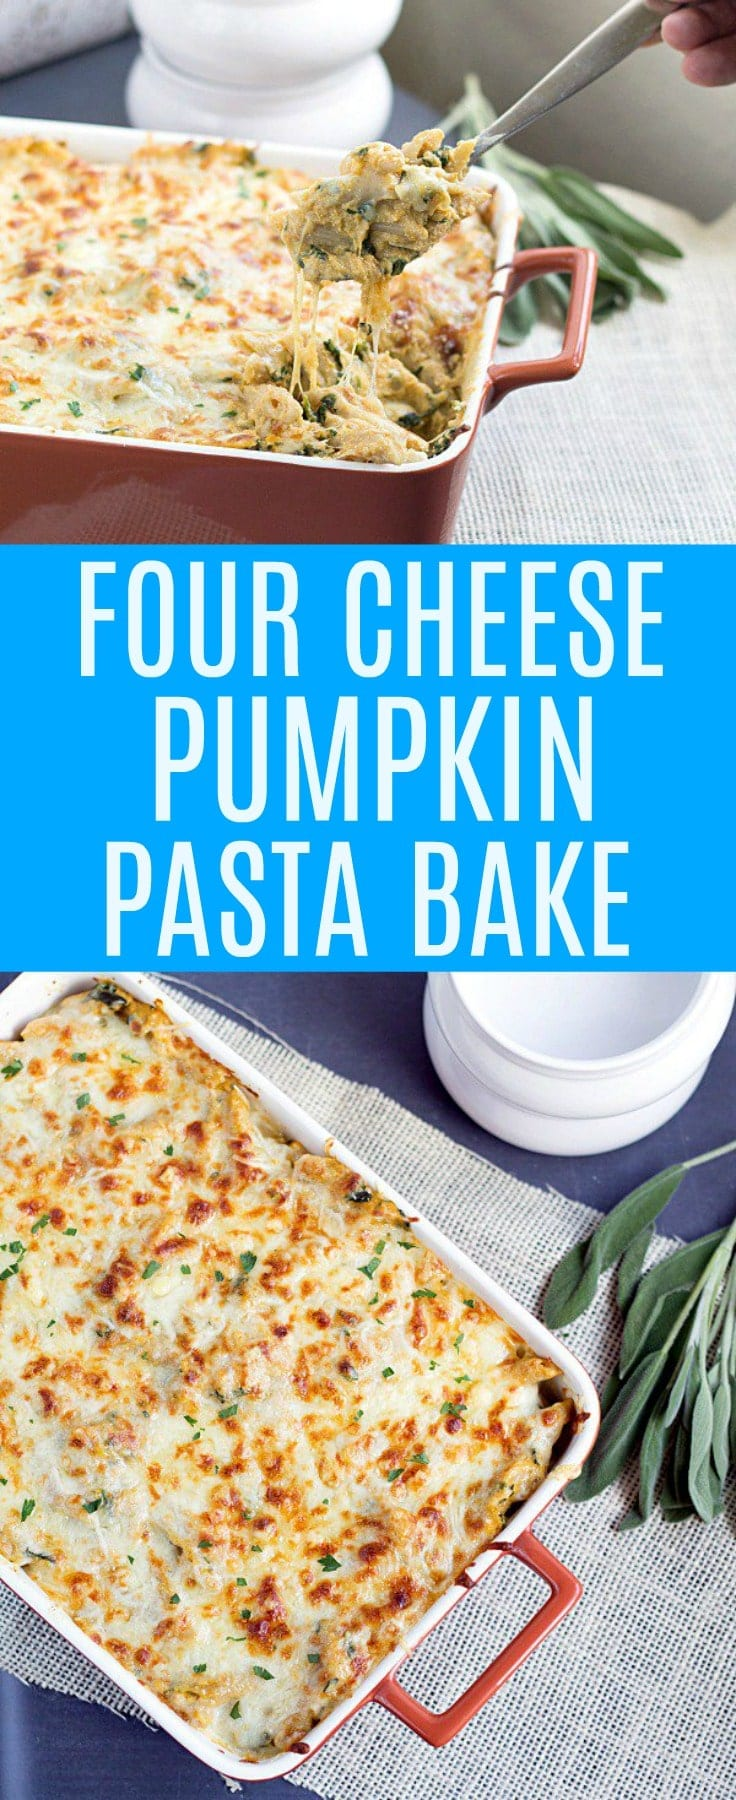 Four Cheese Pumpkin Pasta Bake. This cheesy bold pumpkin pasta bake is easy to make and perfect for dinner!